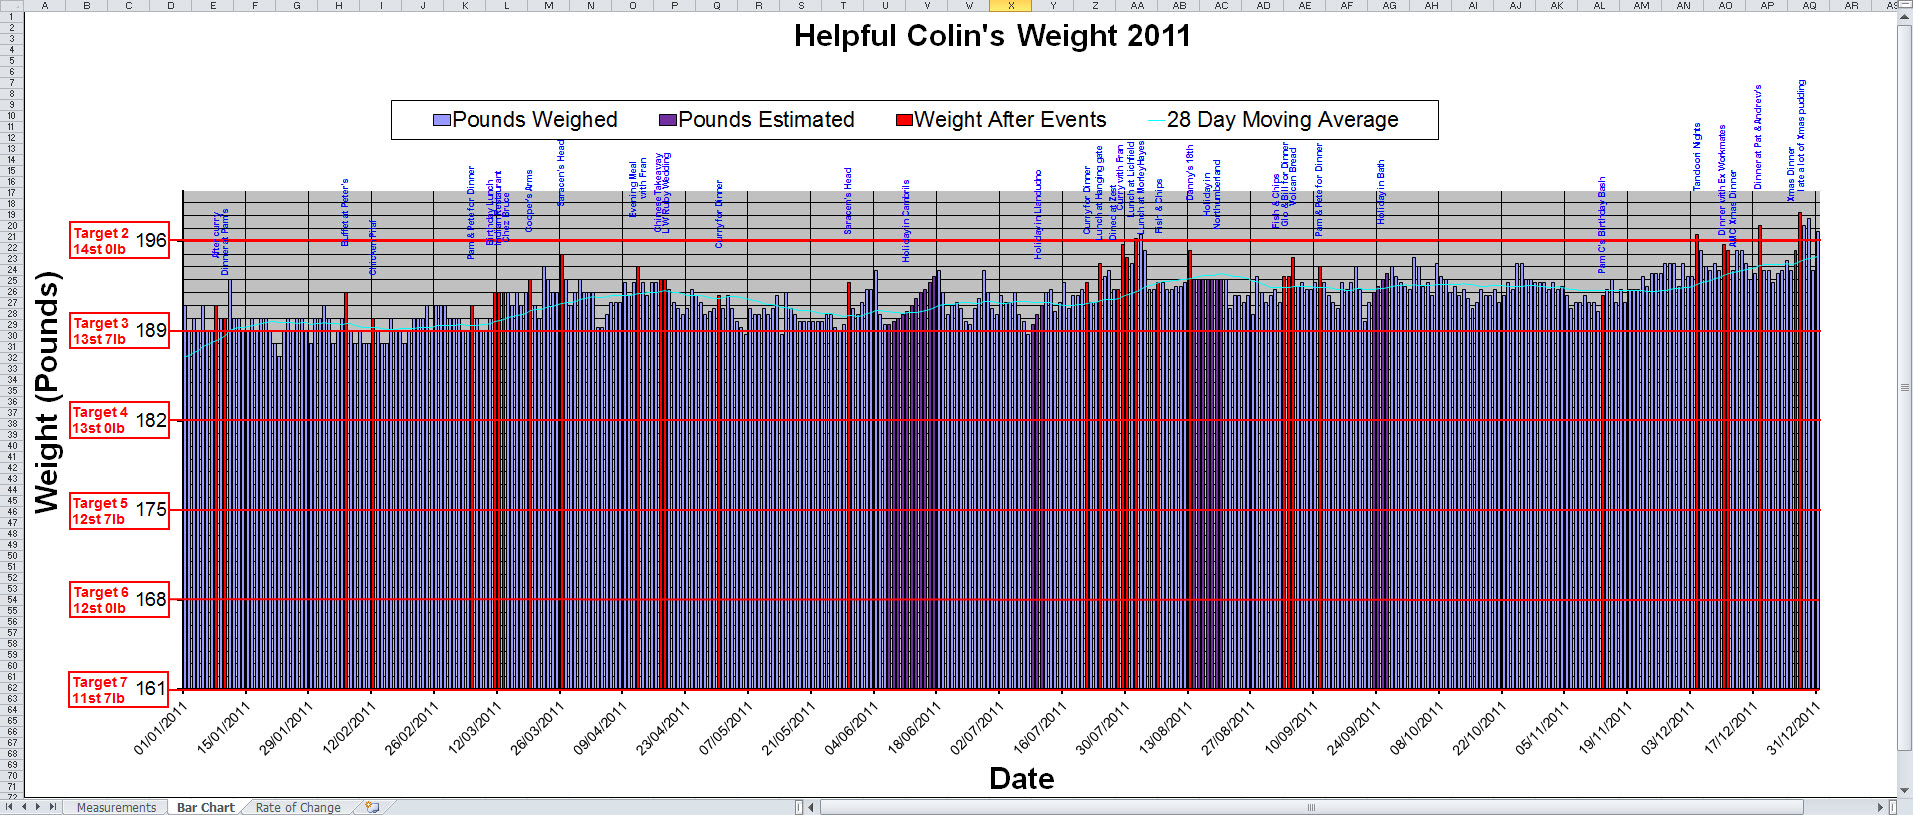 Excel templates for body weight records helpful colin excel graph of helpful colins weight 2011 select it to enlarge it nvjuhfo Choice Image